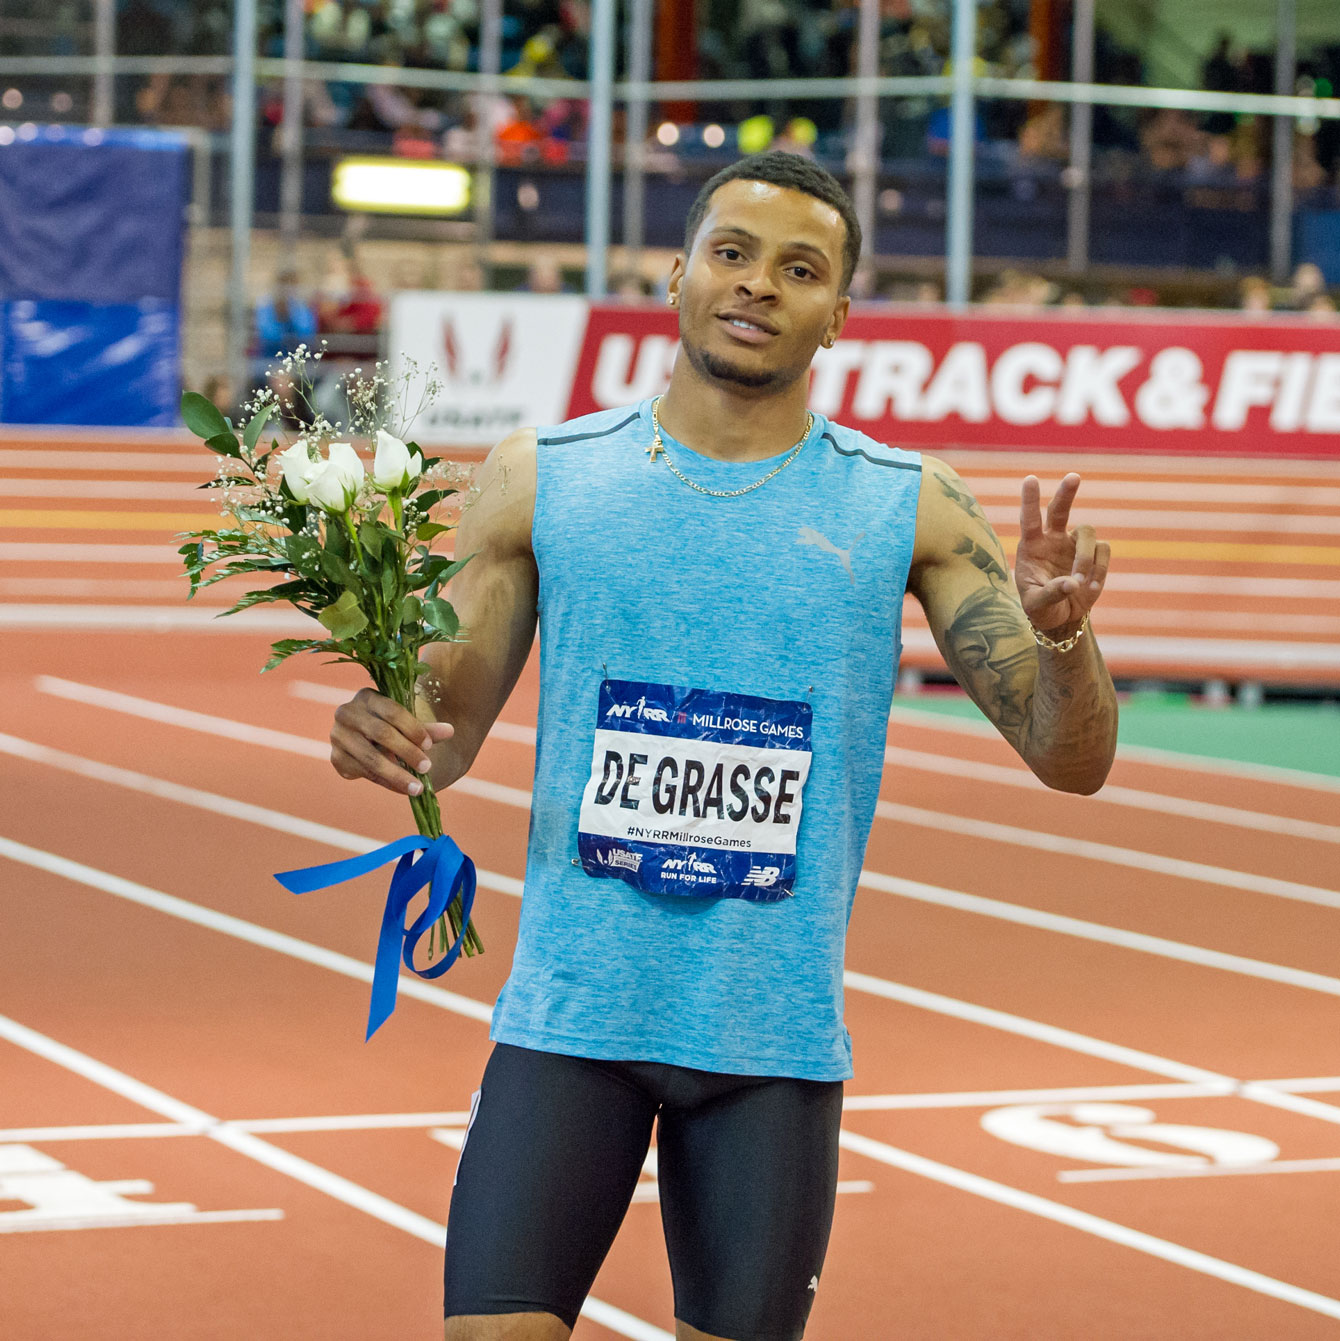 Andre De Grasse after winning the 60m race at the 2016 Millrose Games in New York City on February 20, 2016 (Photo: Robert Lombardo).